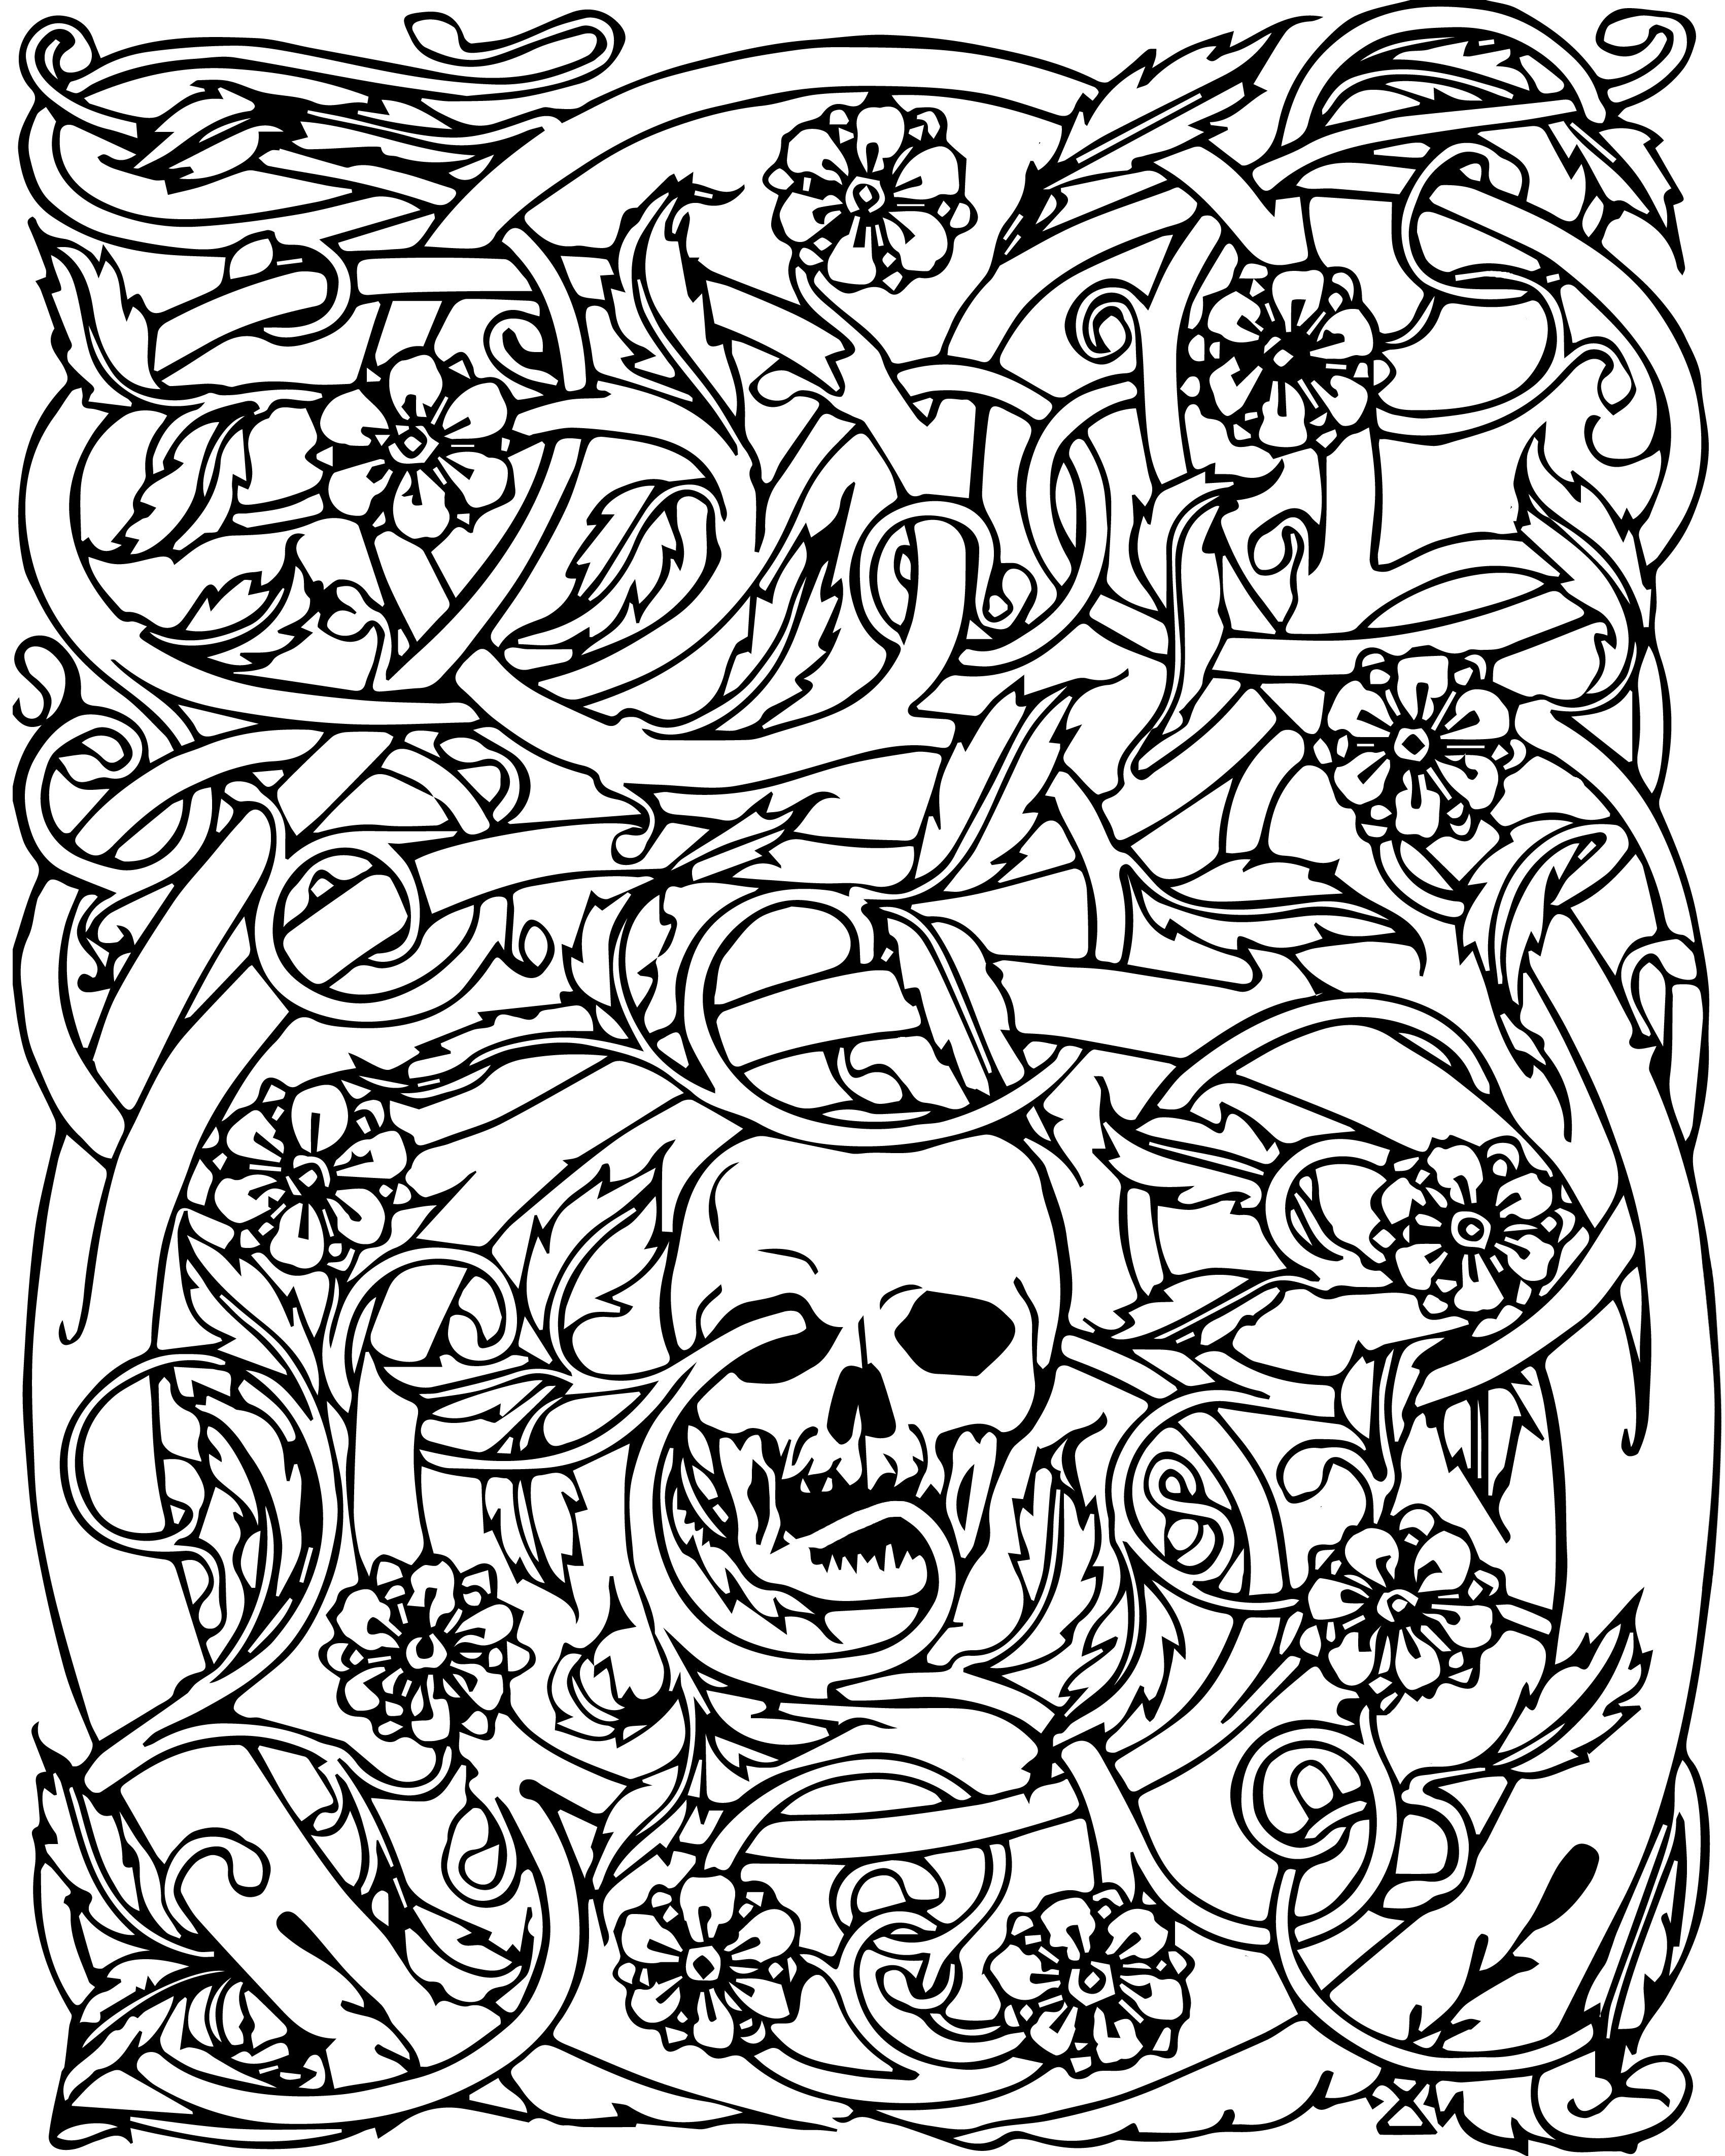 Free Pdf Adult Coloring Pages at GetDrawings | Free download